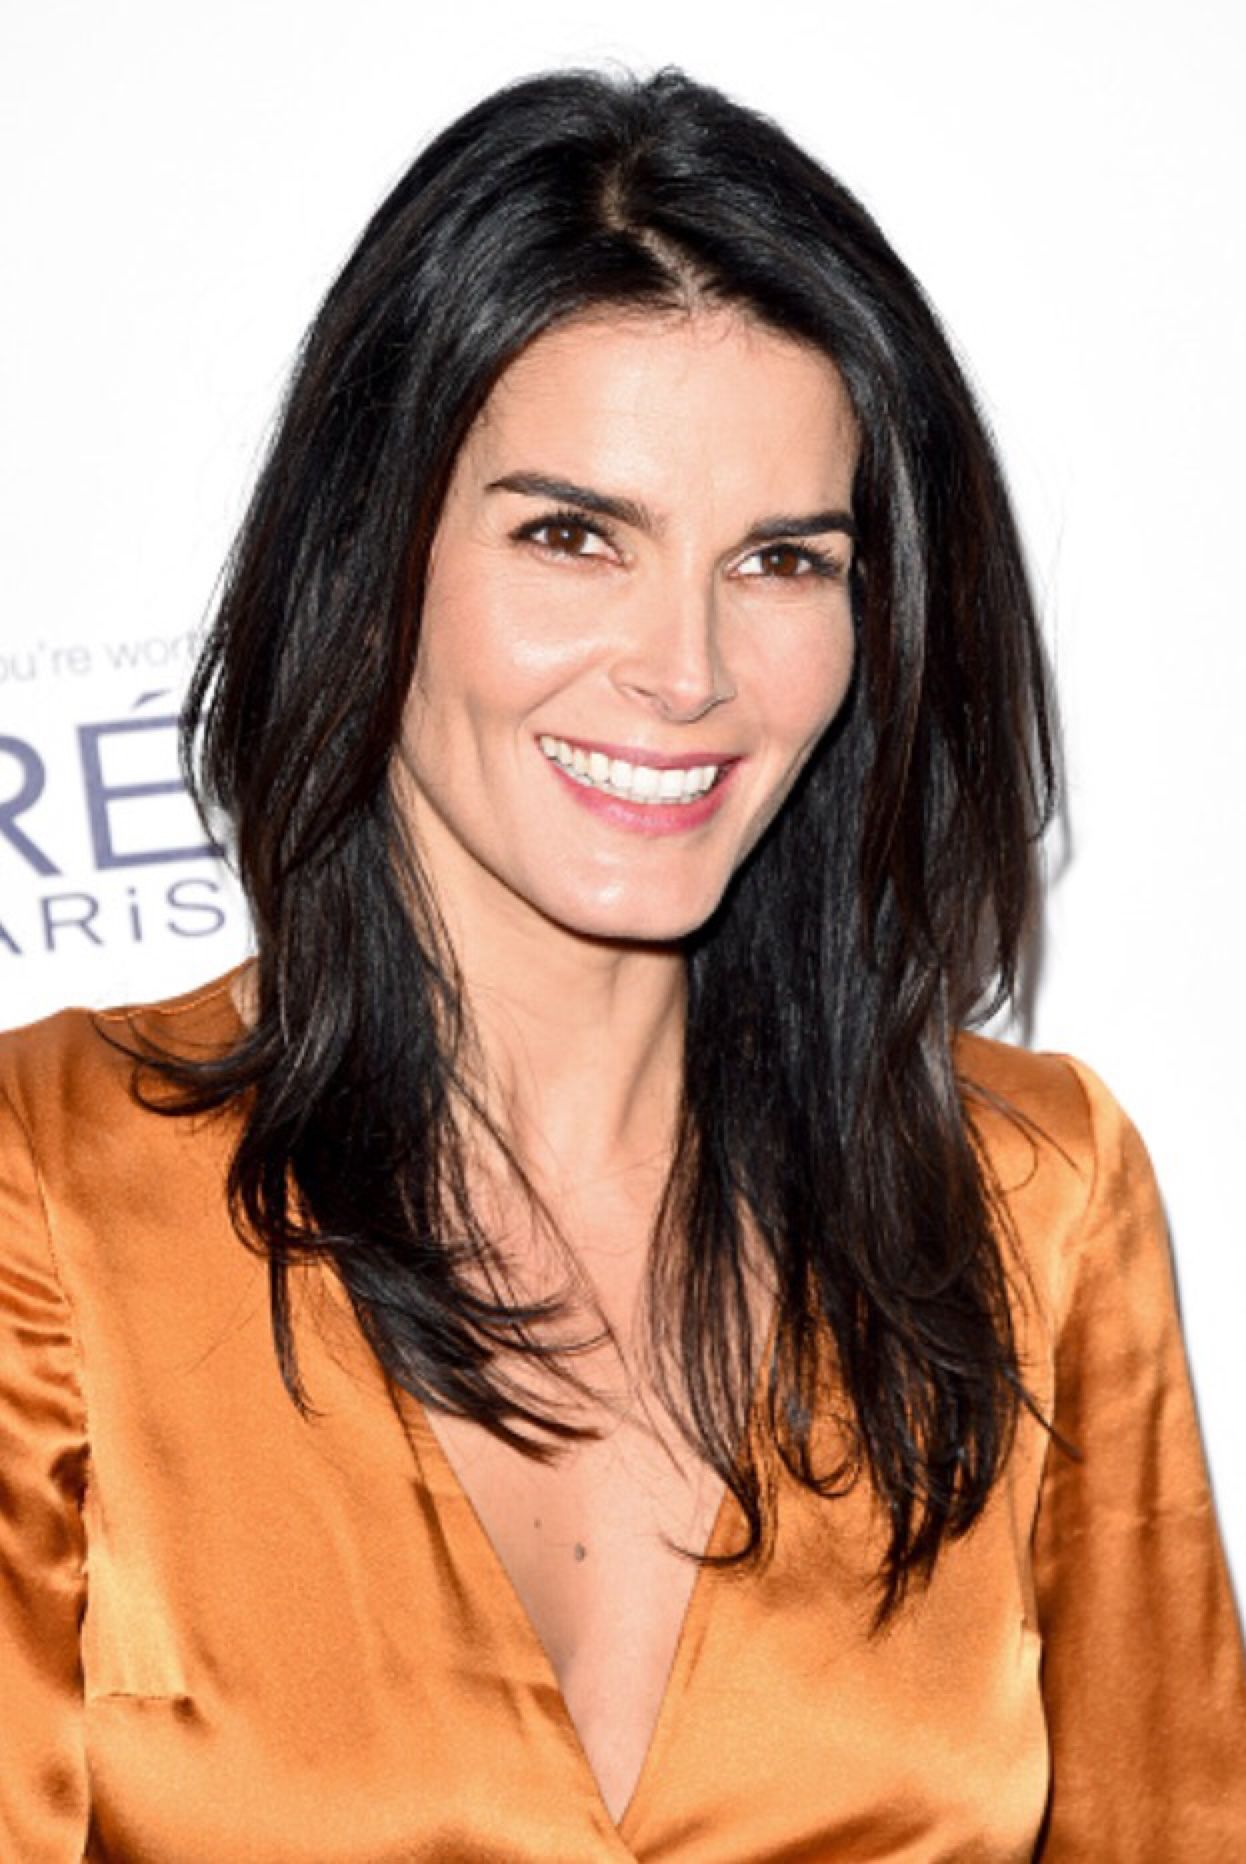 Watch Angie Harmon born August 10, 1972 (age 46) video